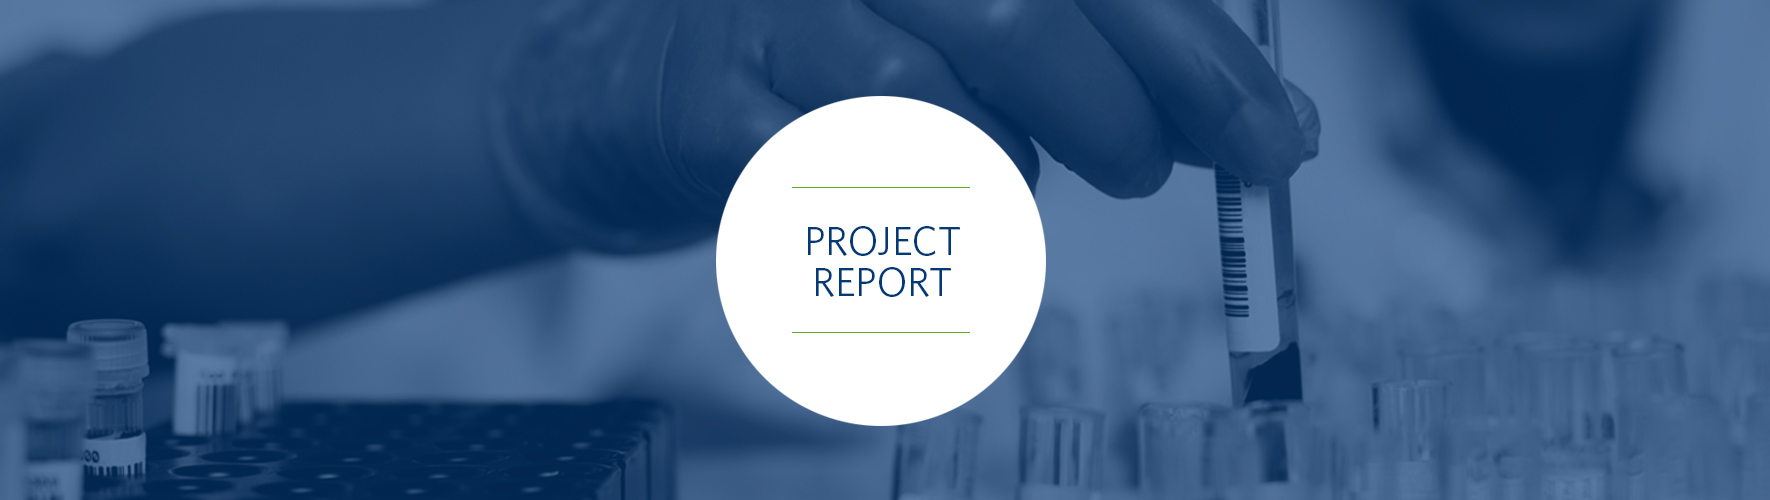 project report \u2013 seceijlocal to global civic engagement with education, awareness, and global health